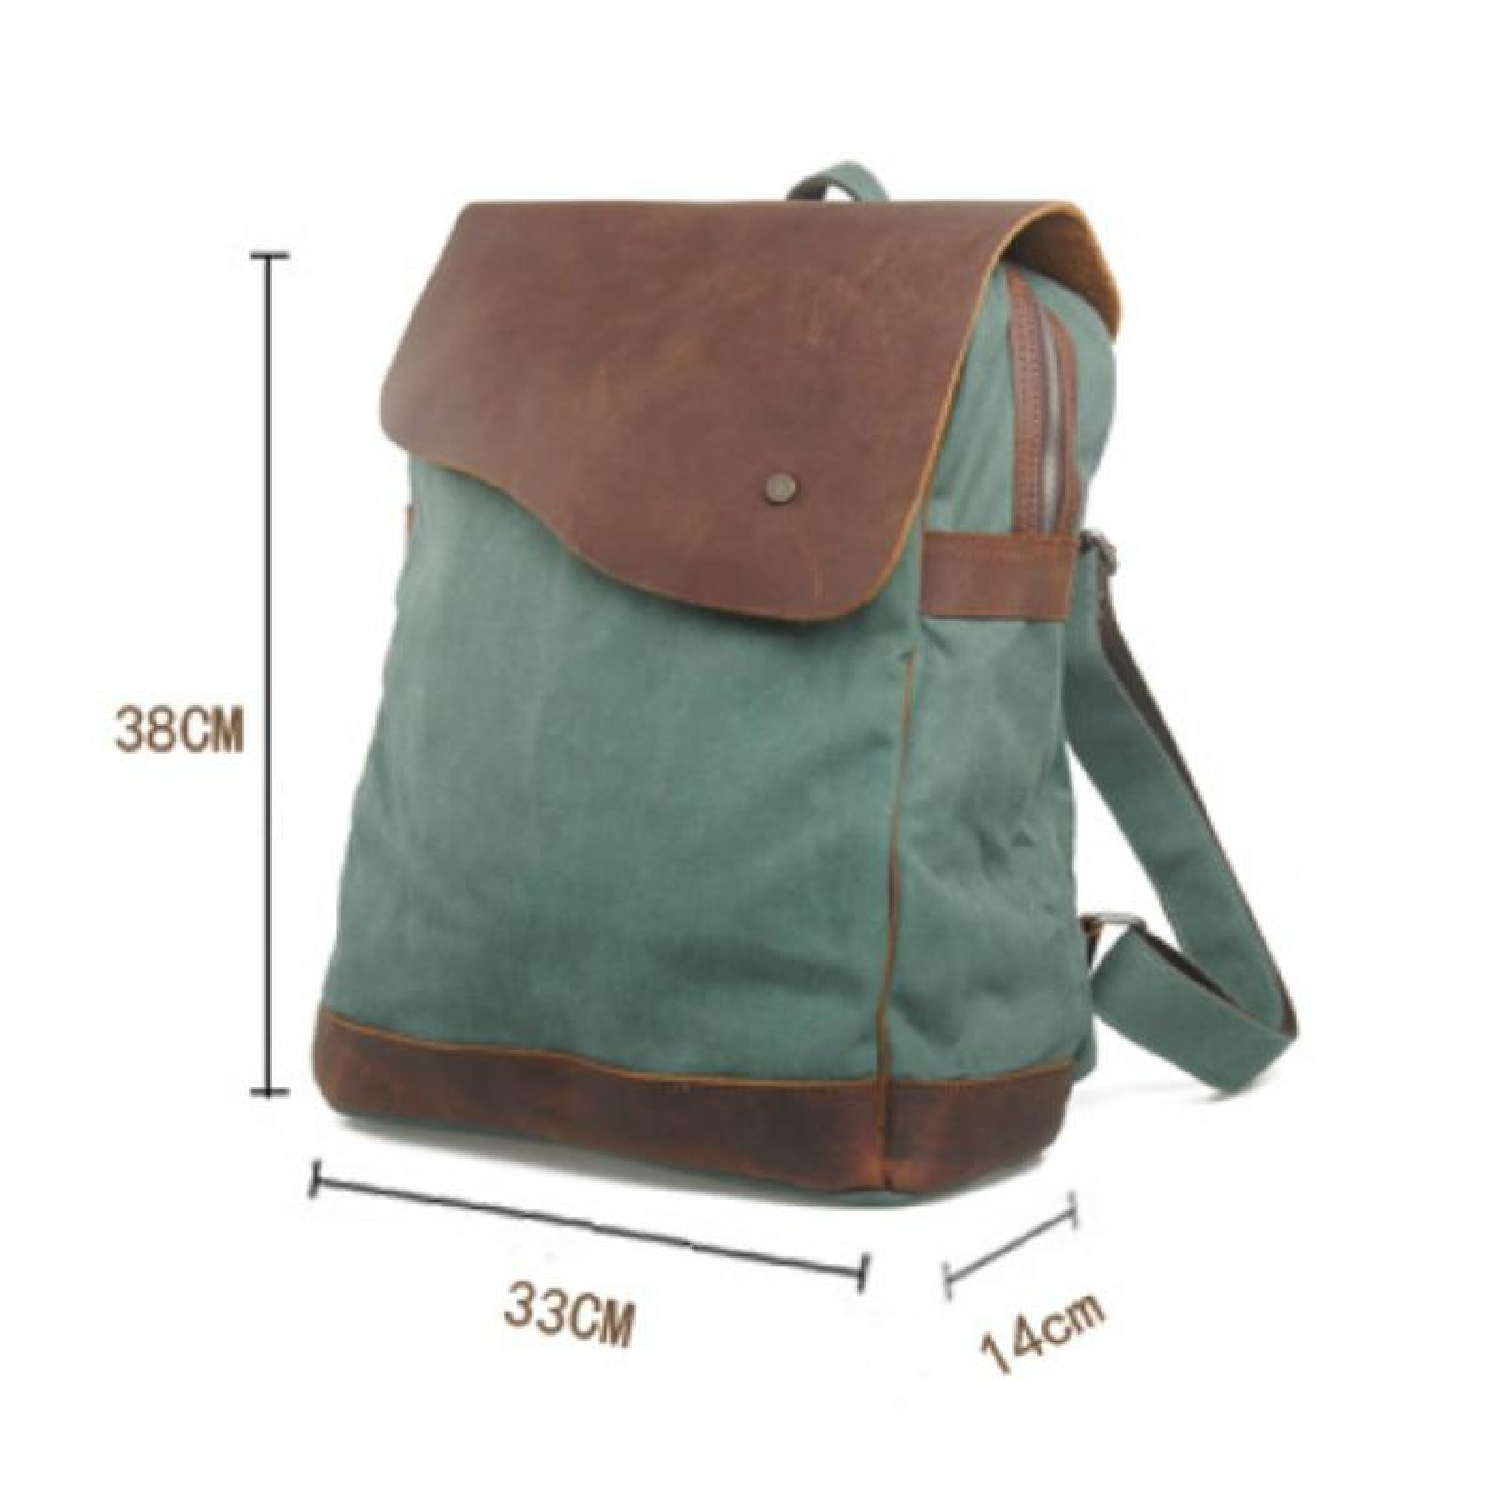 d84330dd75 ... Vintage Canvas Backpack Rucksack Travel Men Bag Hiking School Satchel  Women Army S Shoulder Laptop Sports ...